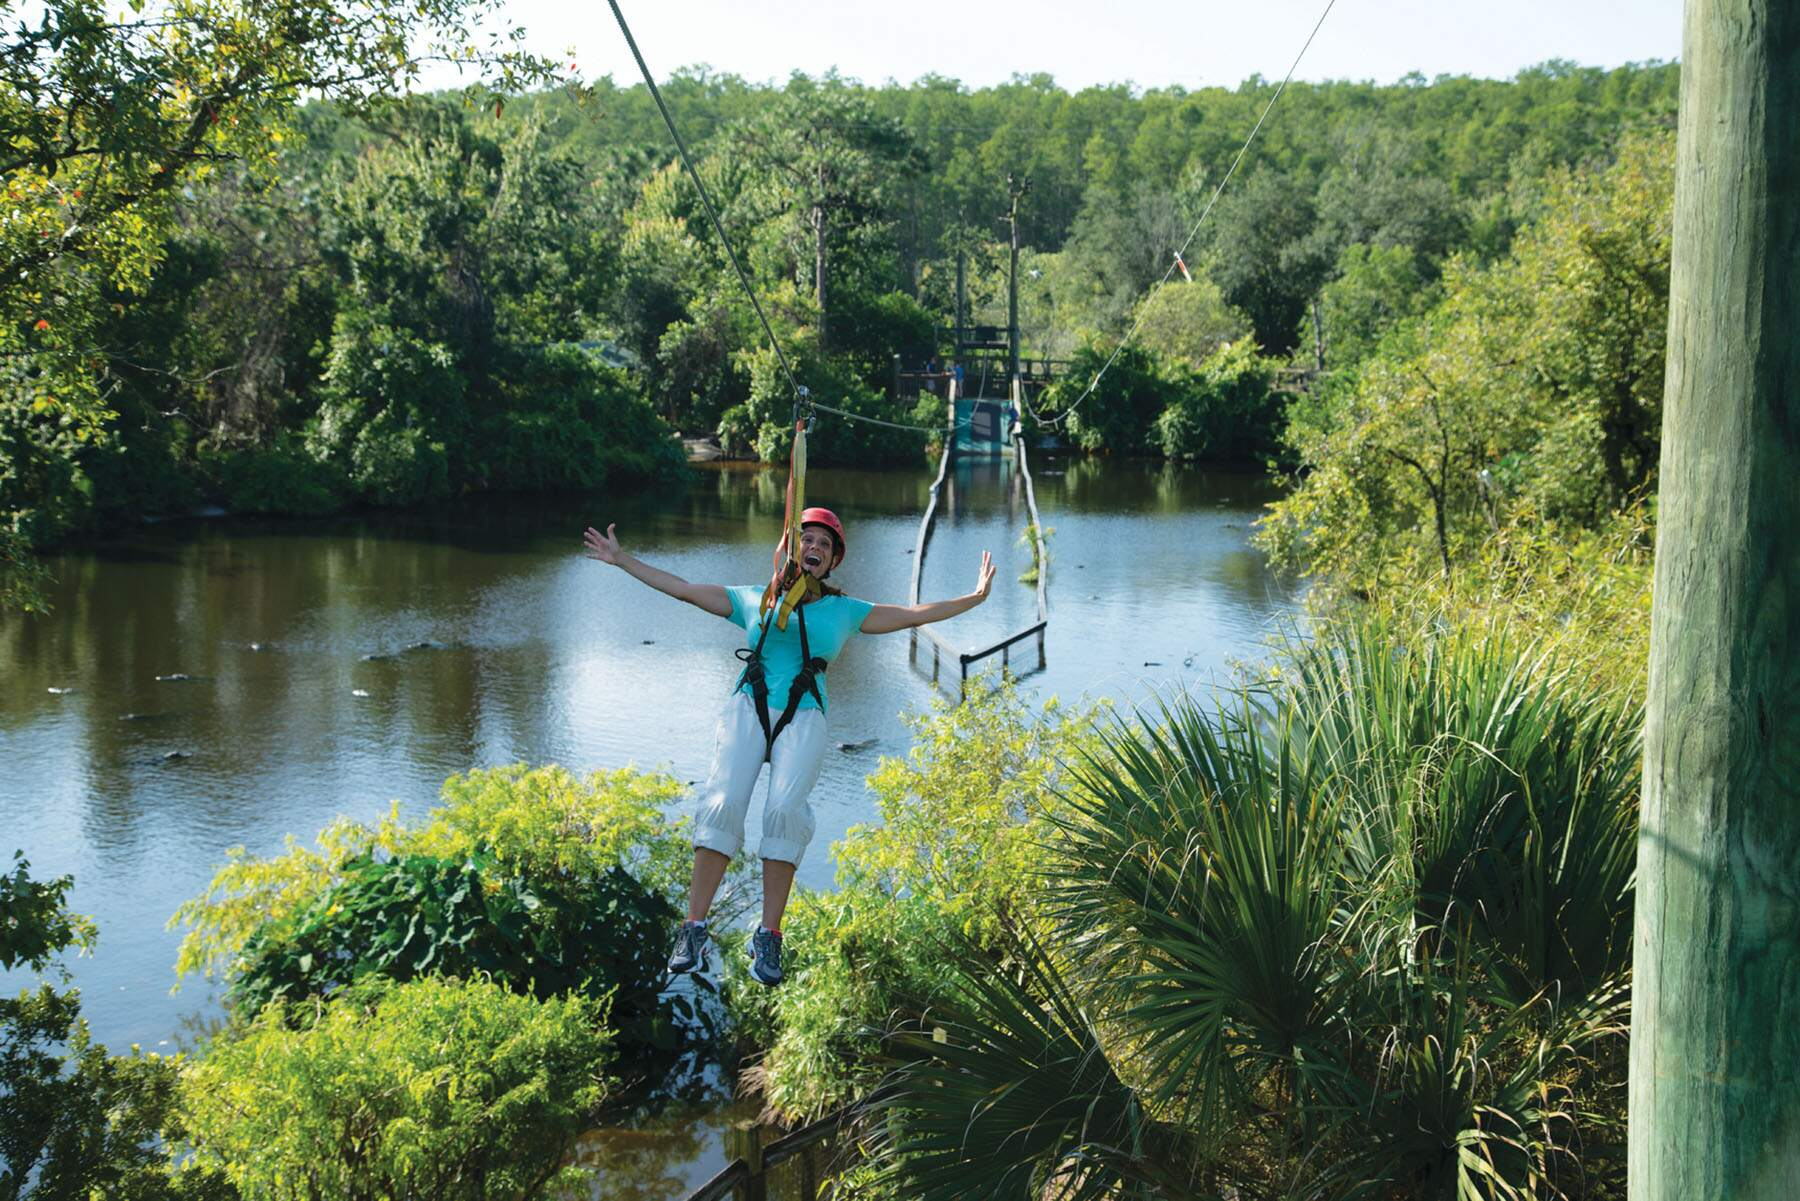 A woman prepares to ride the Screamin' Gator Zip Line at Gatorland